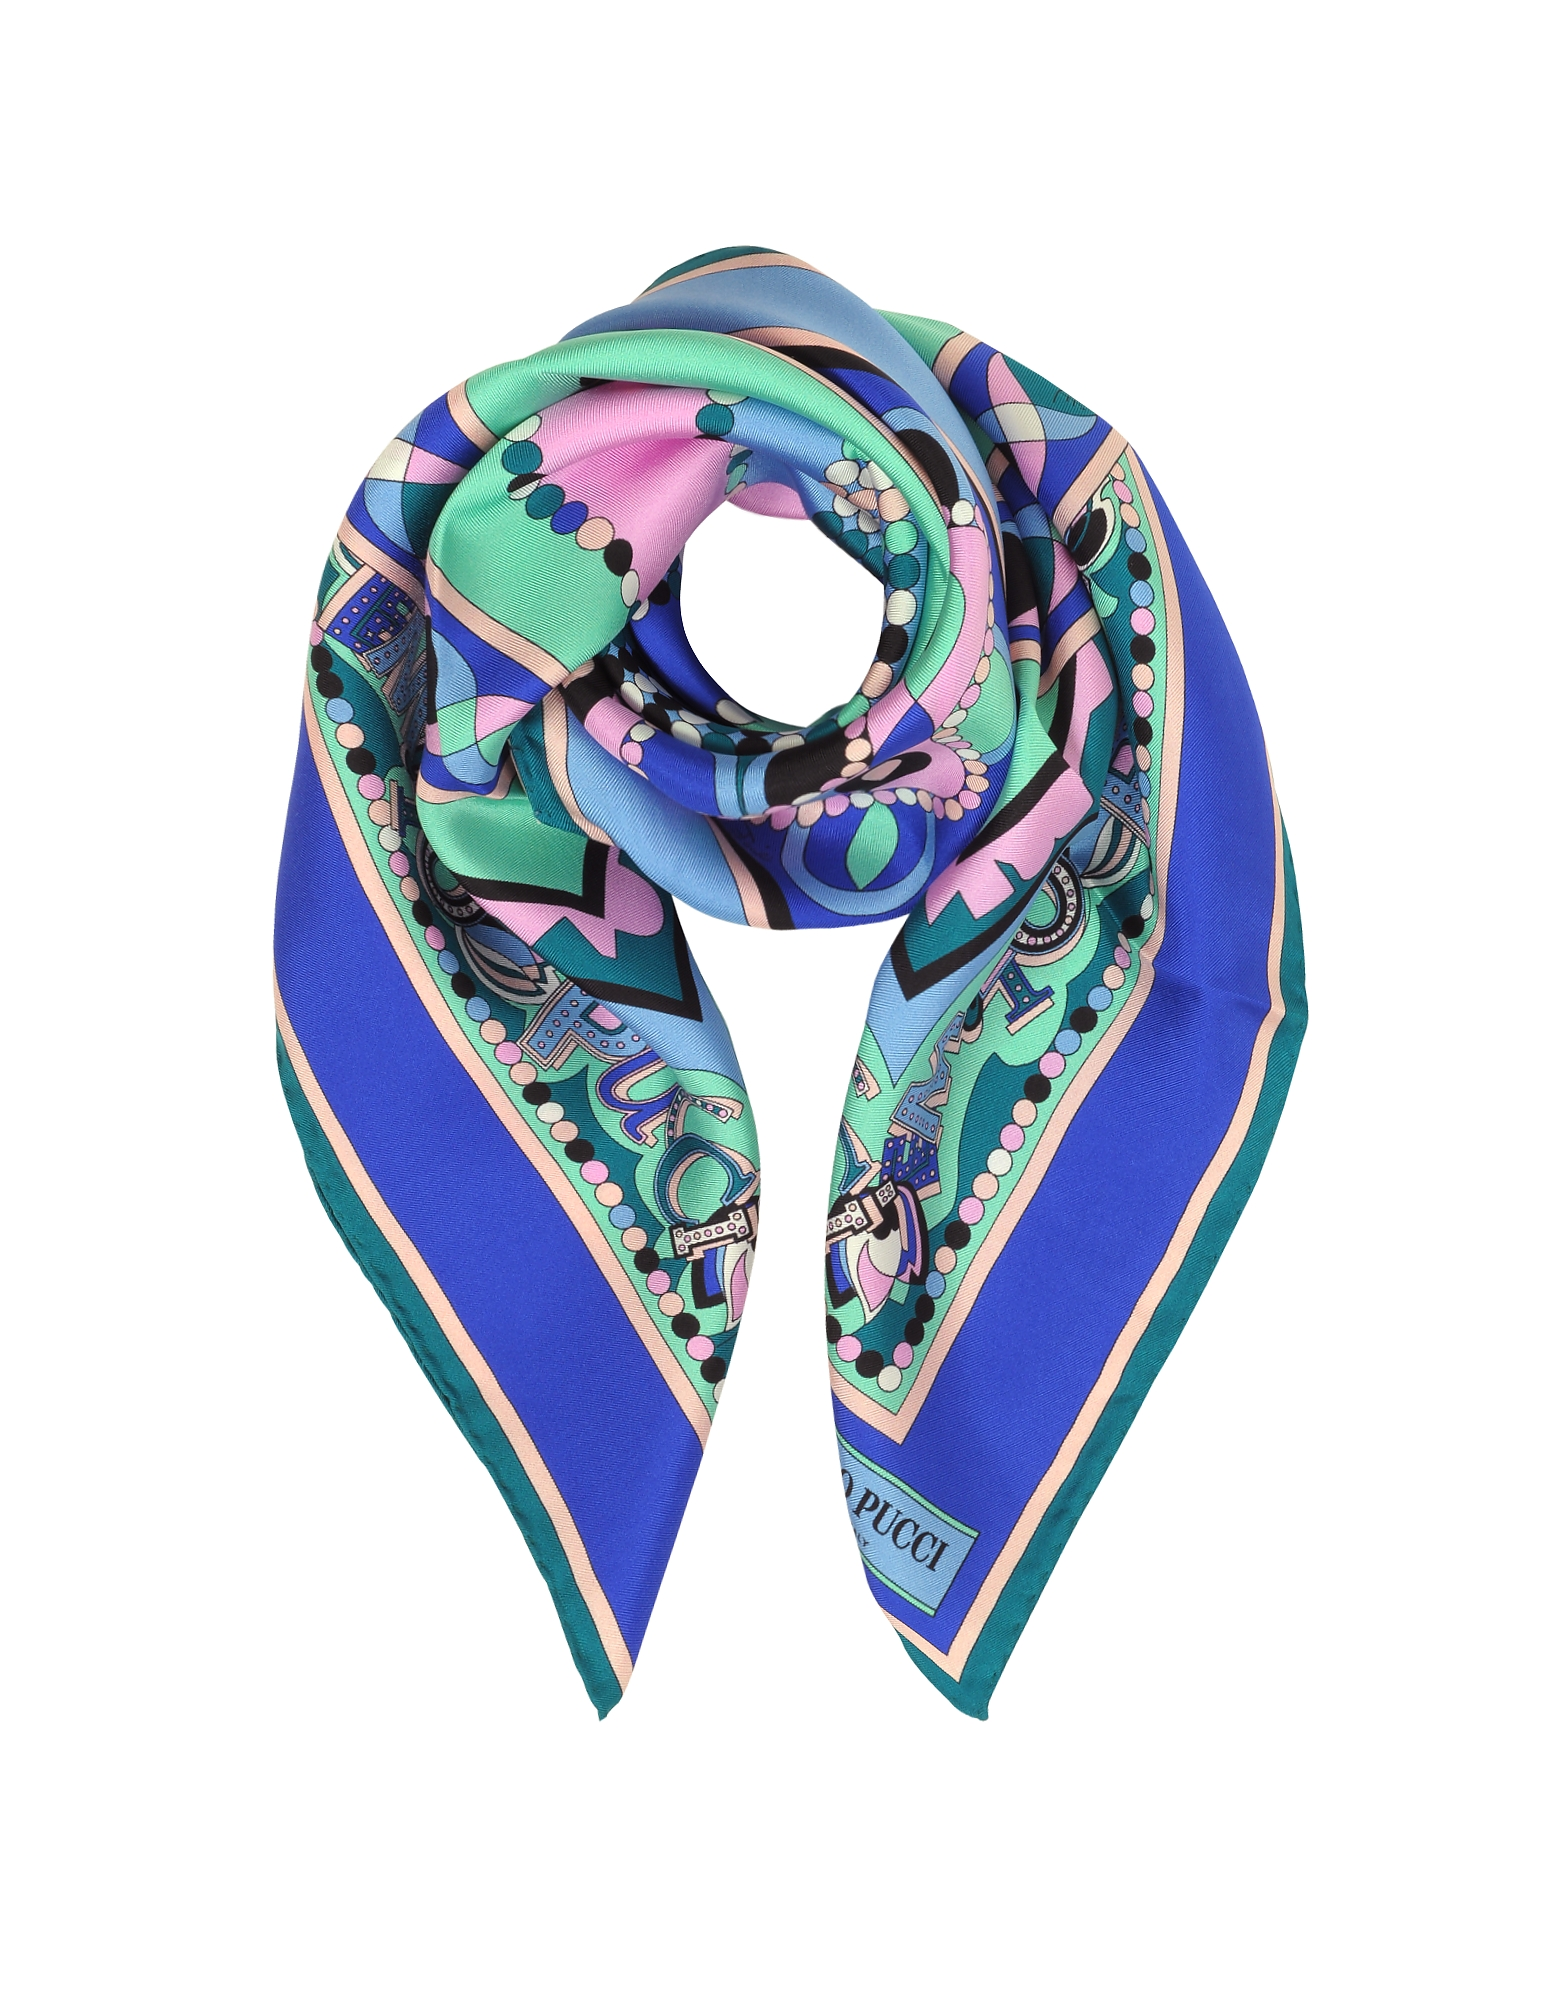 Cobalt Blue/Peony Pink Geometric and Signature Printed Silk Square Scarf